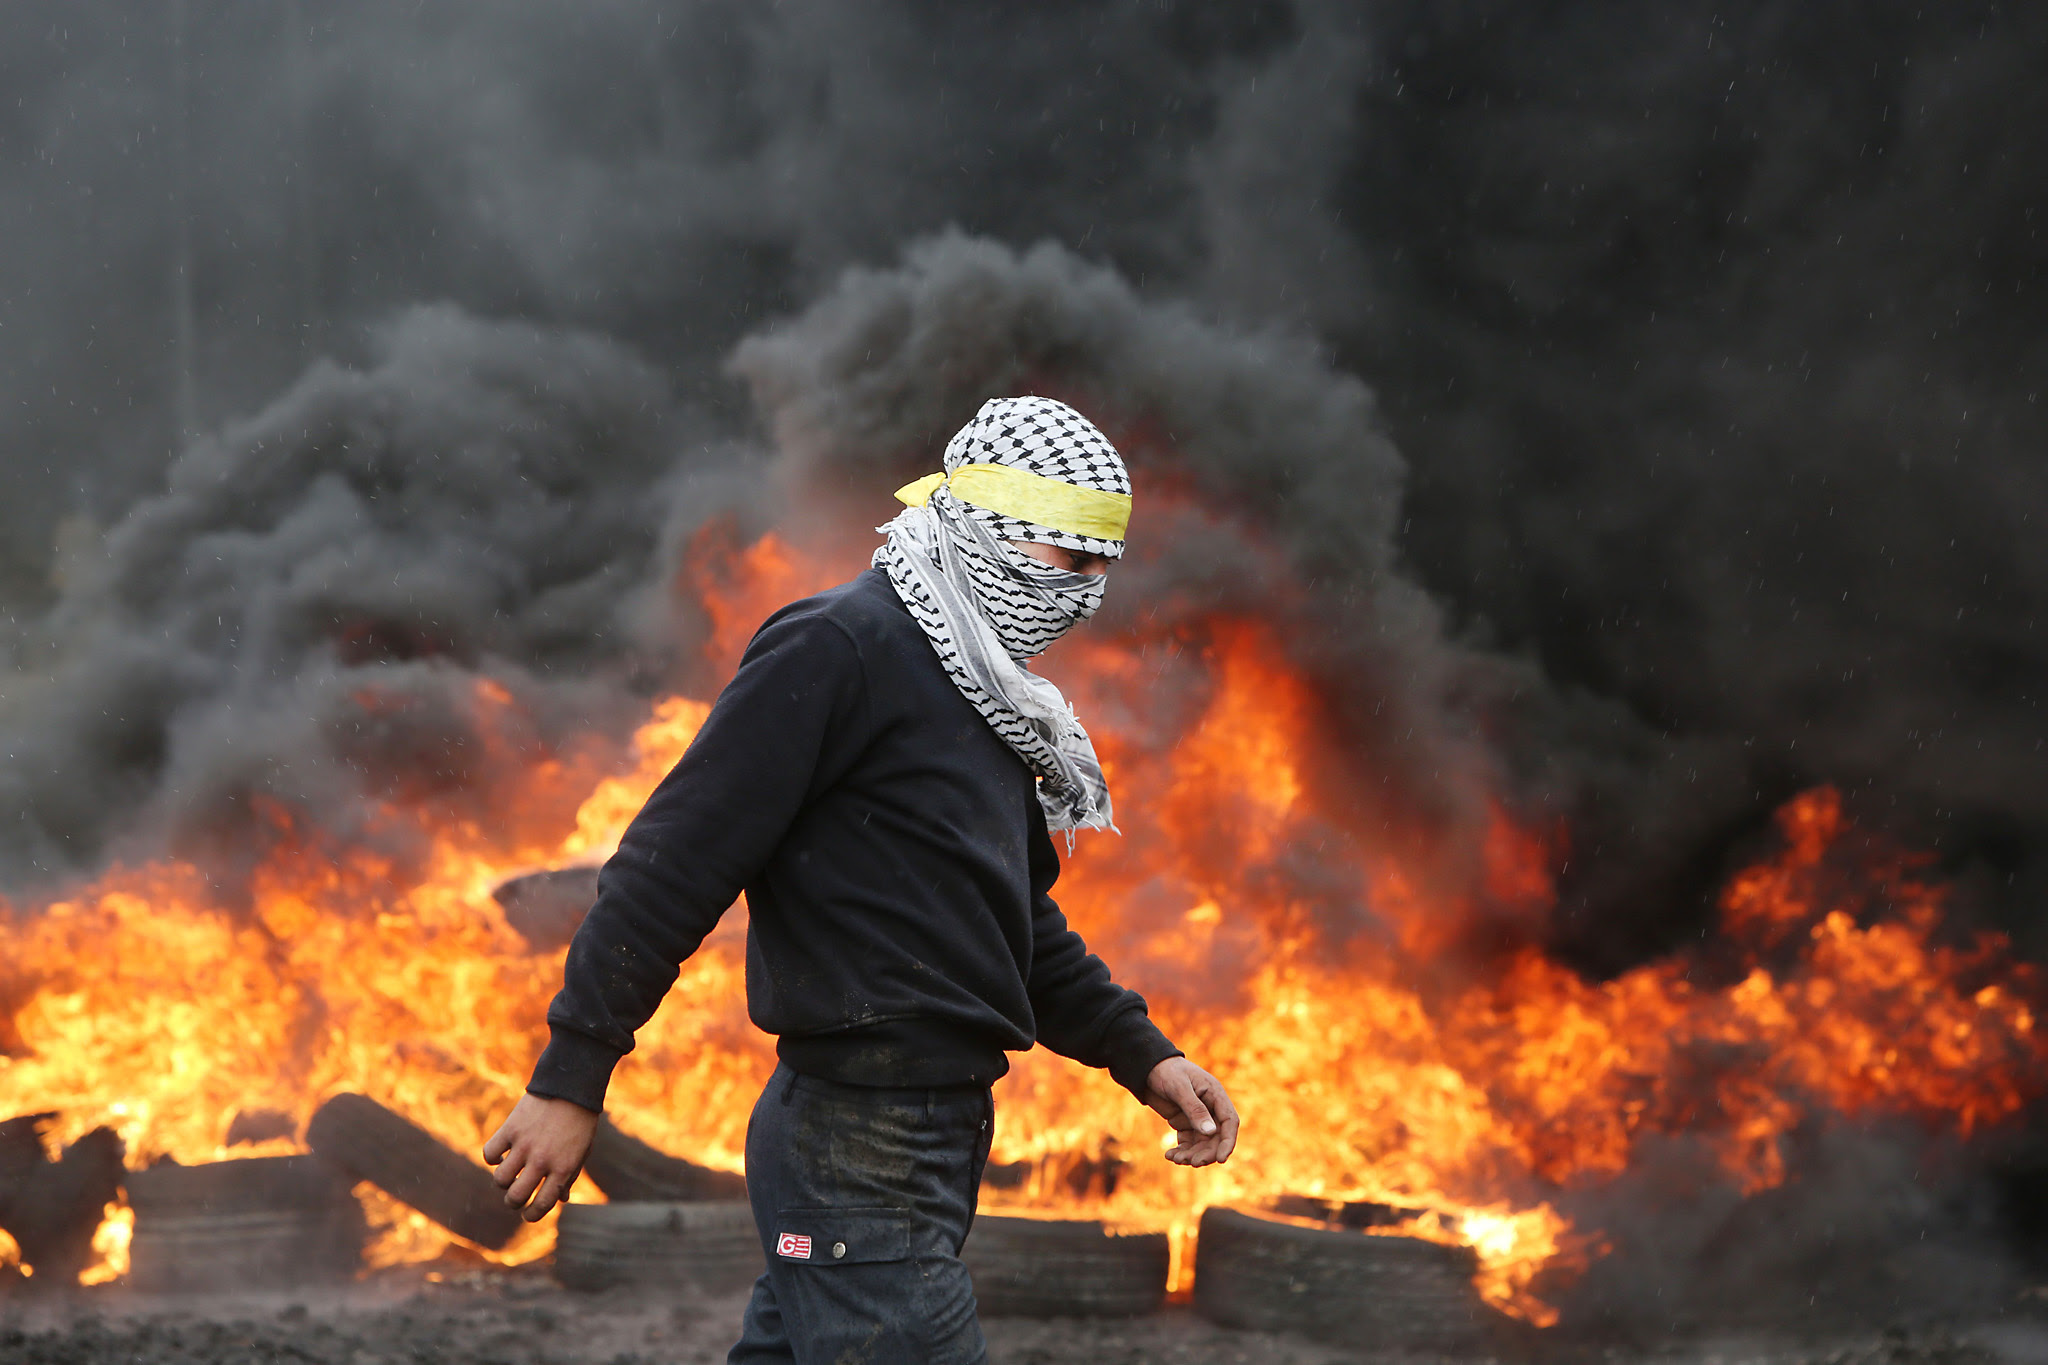 A Palestinian protester walks past burni...A Palestinian protester walks past burning tyres during clashes with Israeli security forces following a demonstration against the expropriation of Palestinian land by Israel, on January 8, 2016, in the village of Kafr Qaddum, near the city of Nablus in the Israeli occupied West Bank. AFP PHOTO / JAAFAR ASHTIYEHJAAFAR ASHTIYEH/AFP/Getty Images